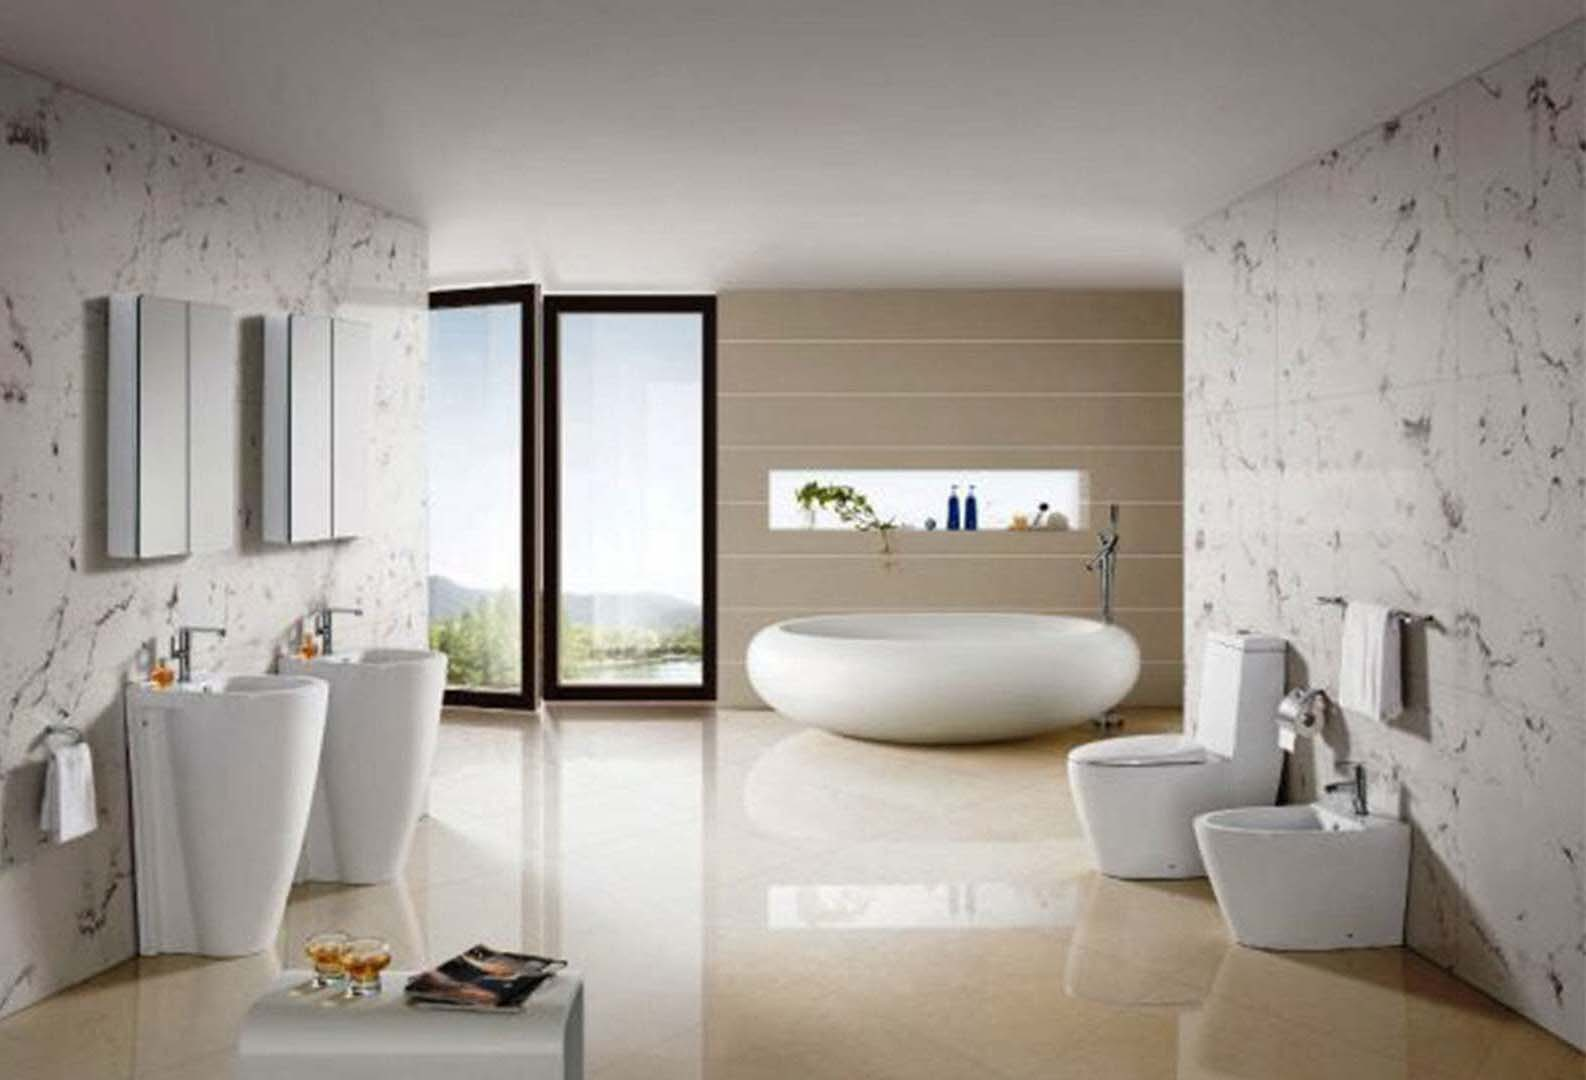 Best bathrooms 2014 - Inspiration Creative Ideas For Decorating A Bathroom Images Wow Bathrooms Ideas 2014 With Additional Furniture Home